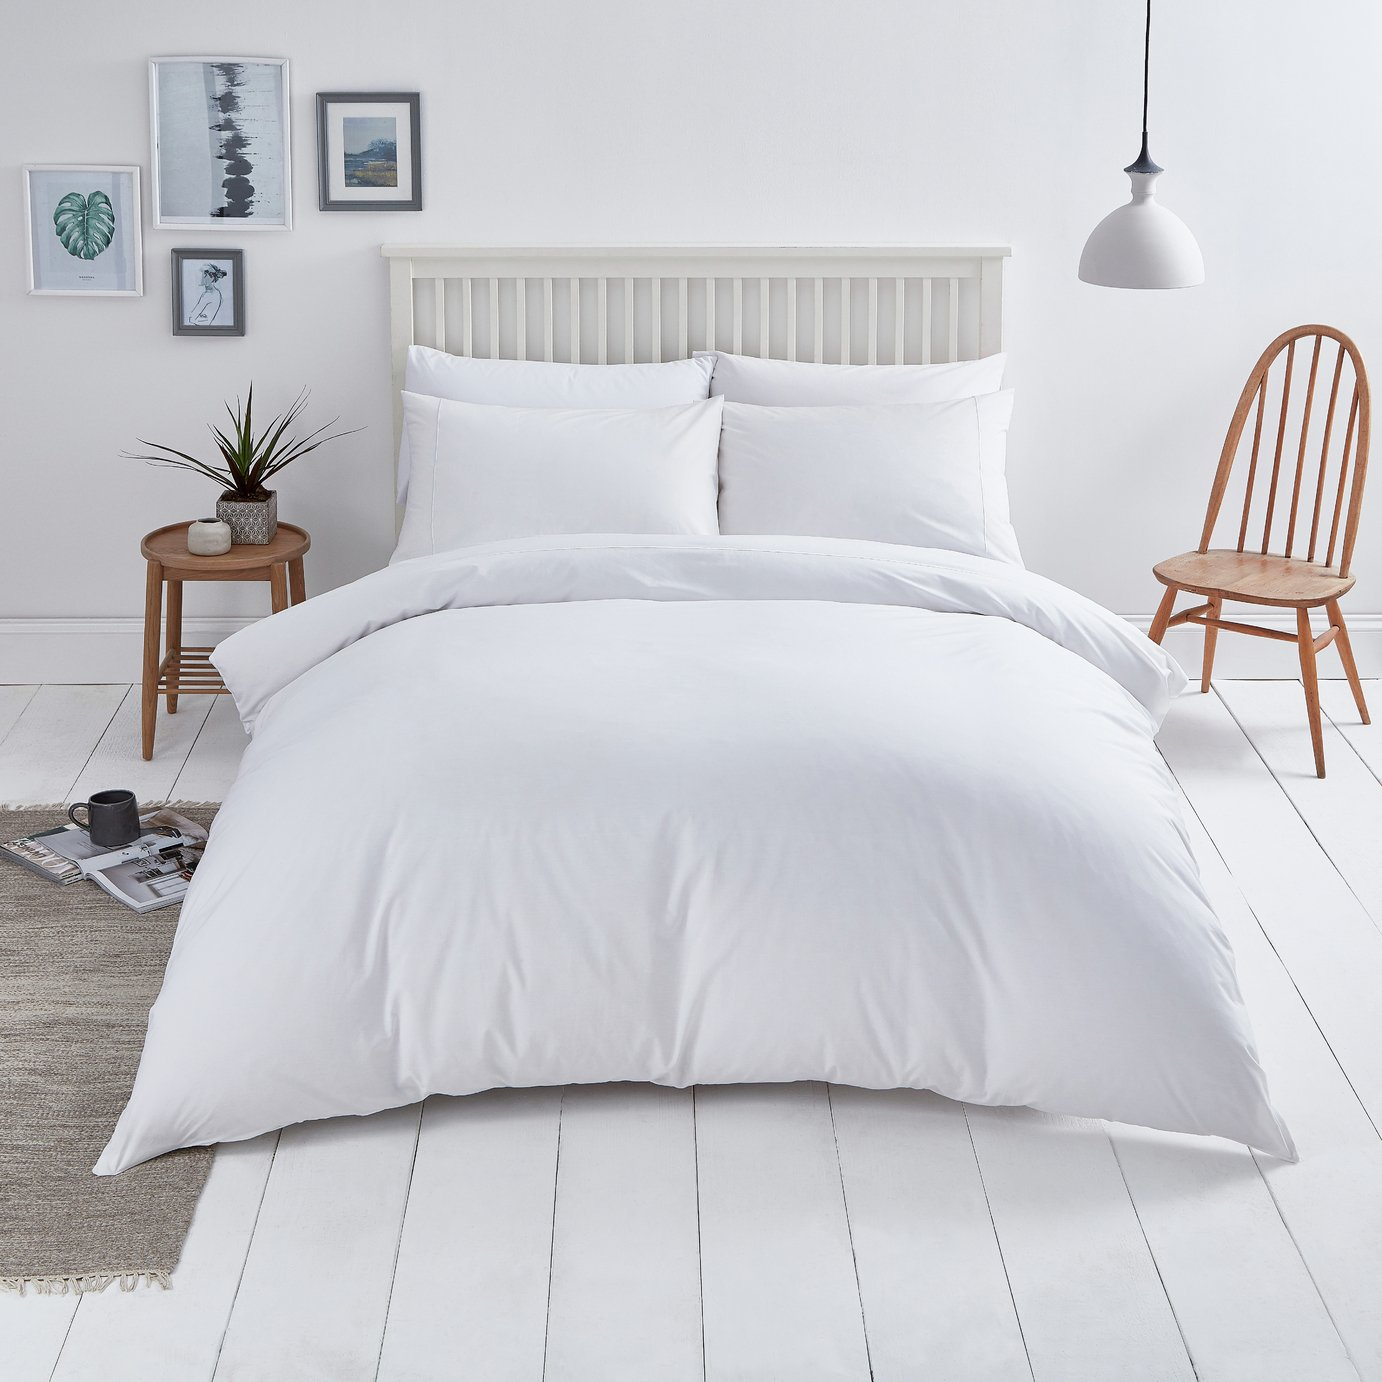 Sainsbury's Home Cool Cotton White Bedding Set - Single